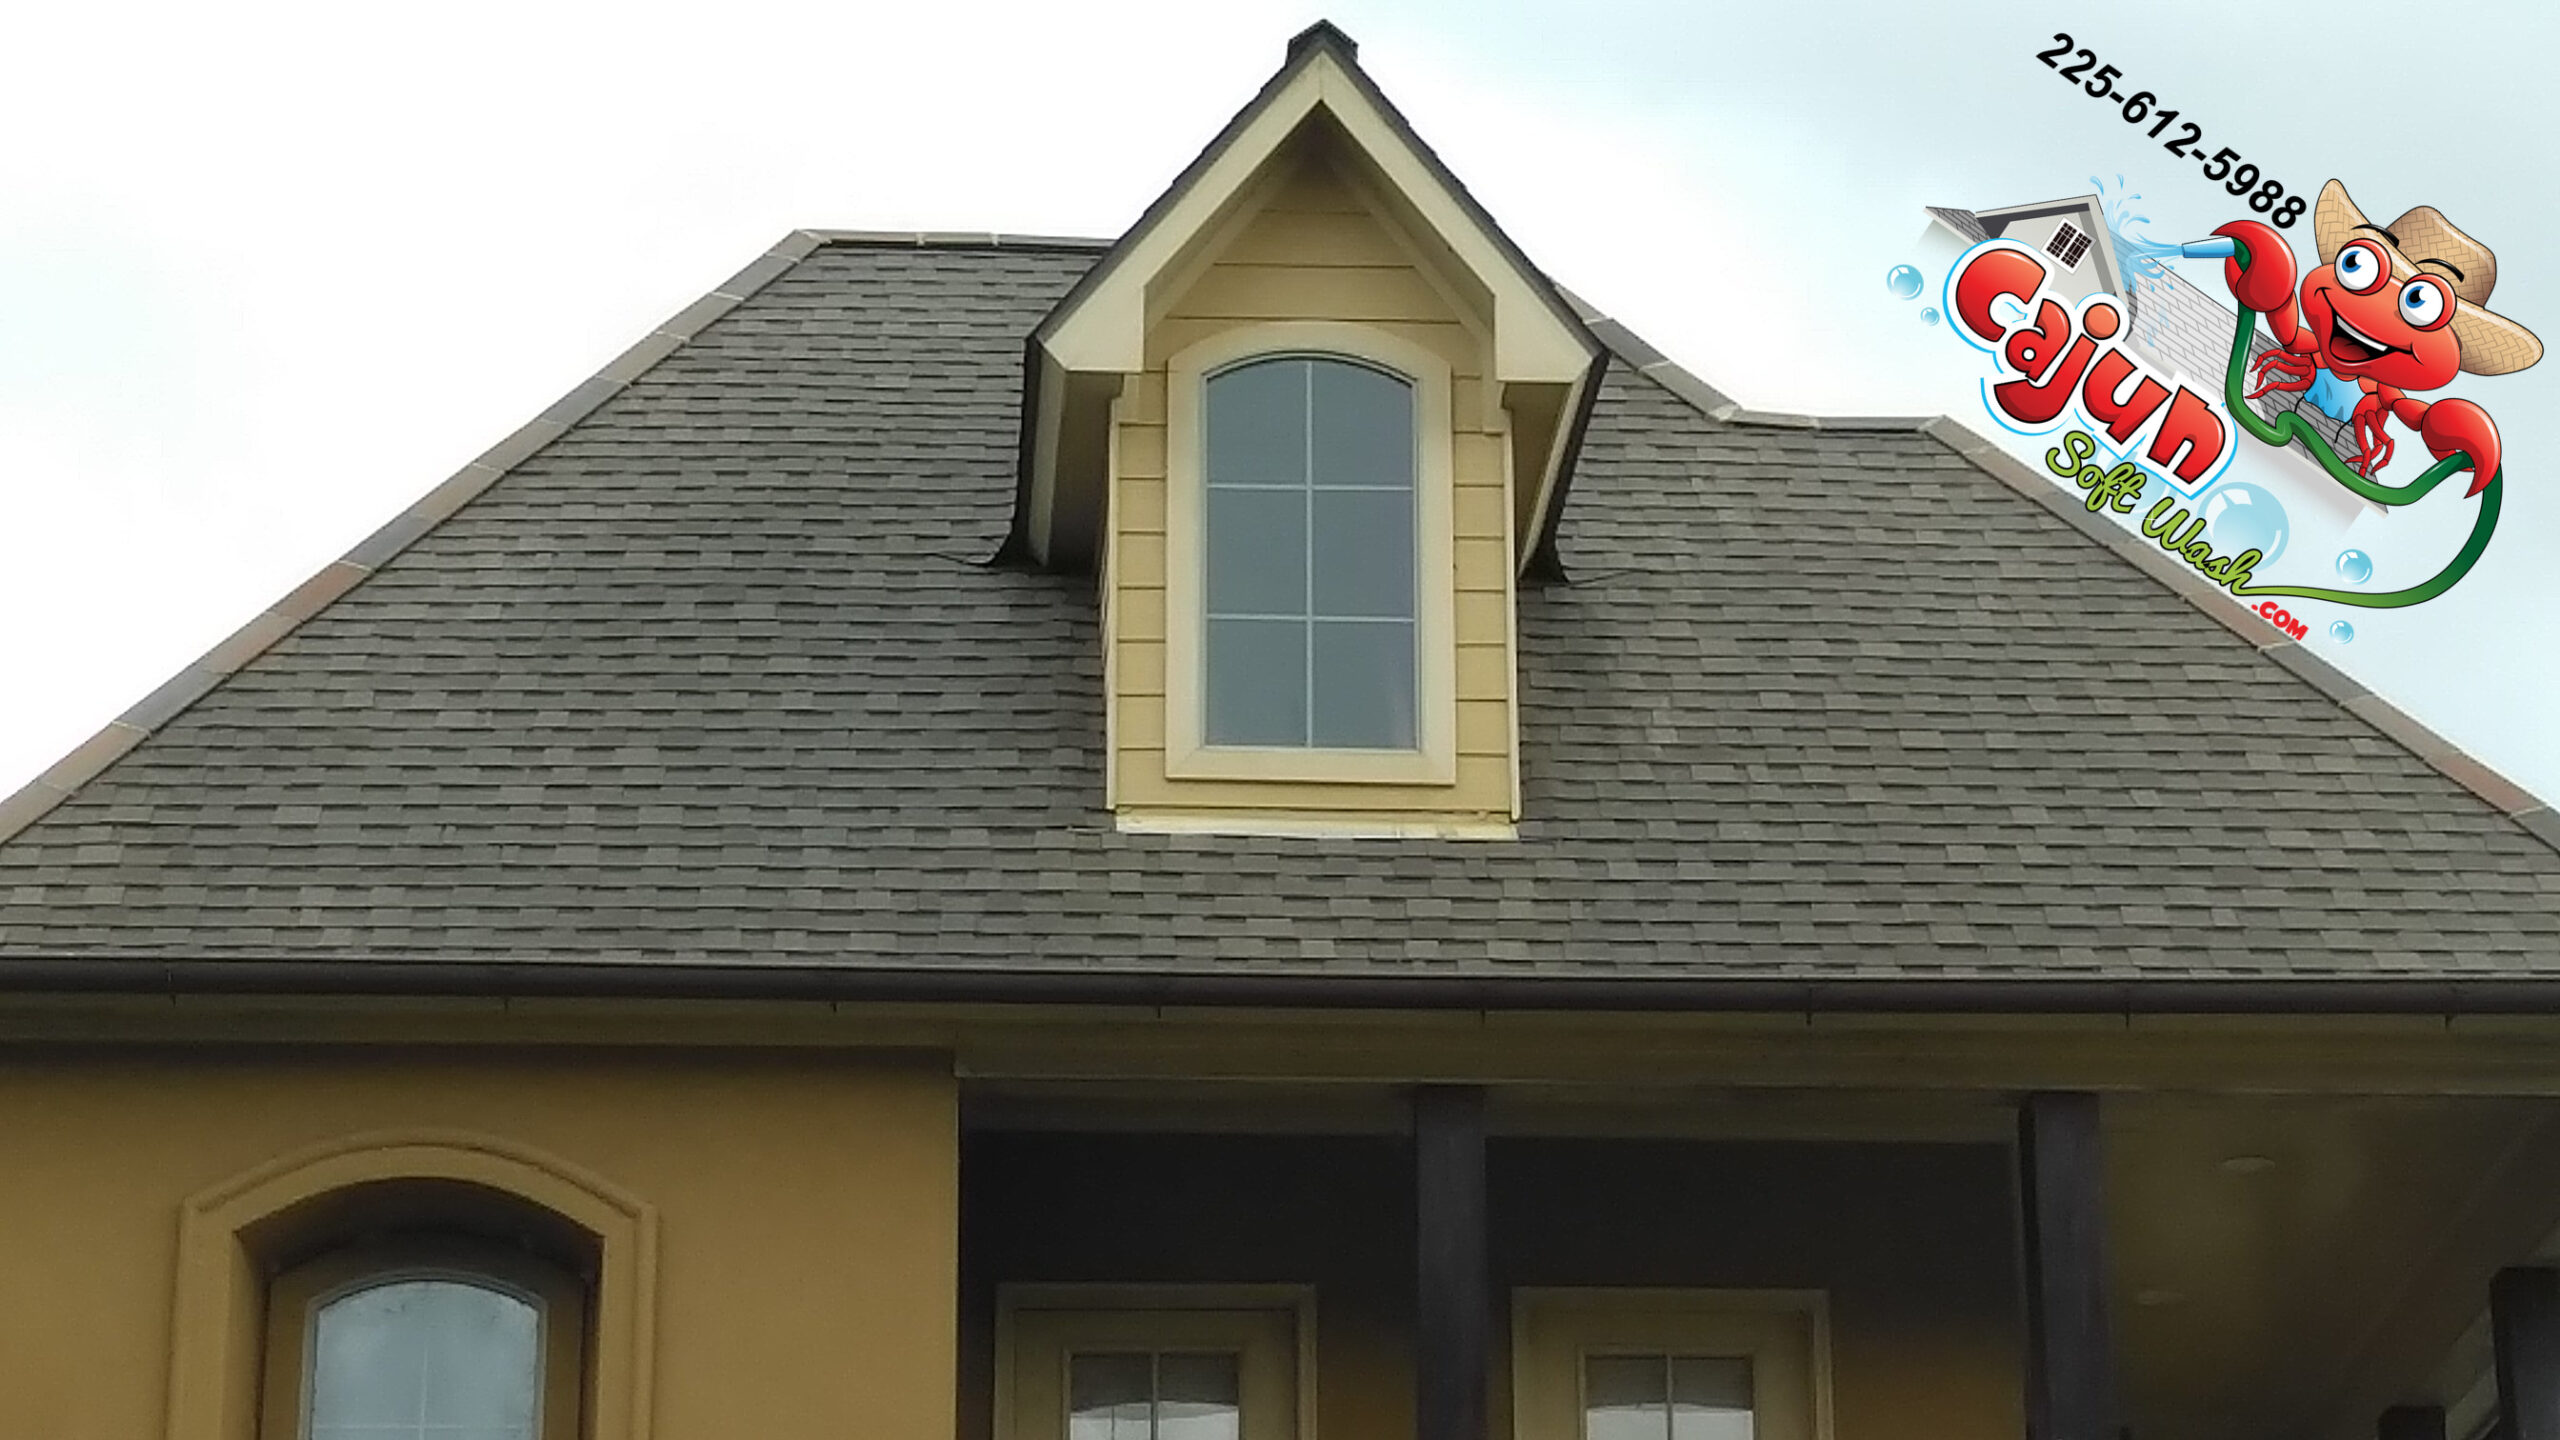 Cajun Soft Wash residential roof cleaning exterior dirt window